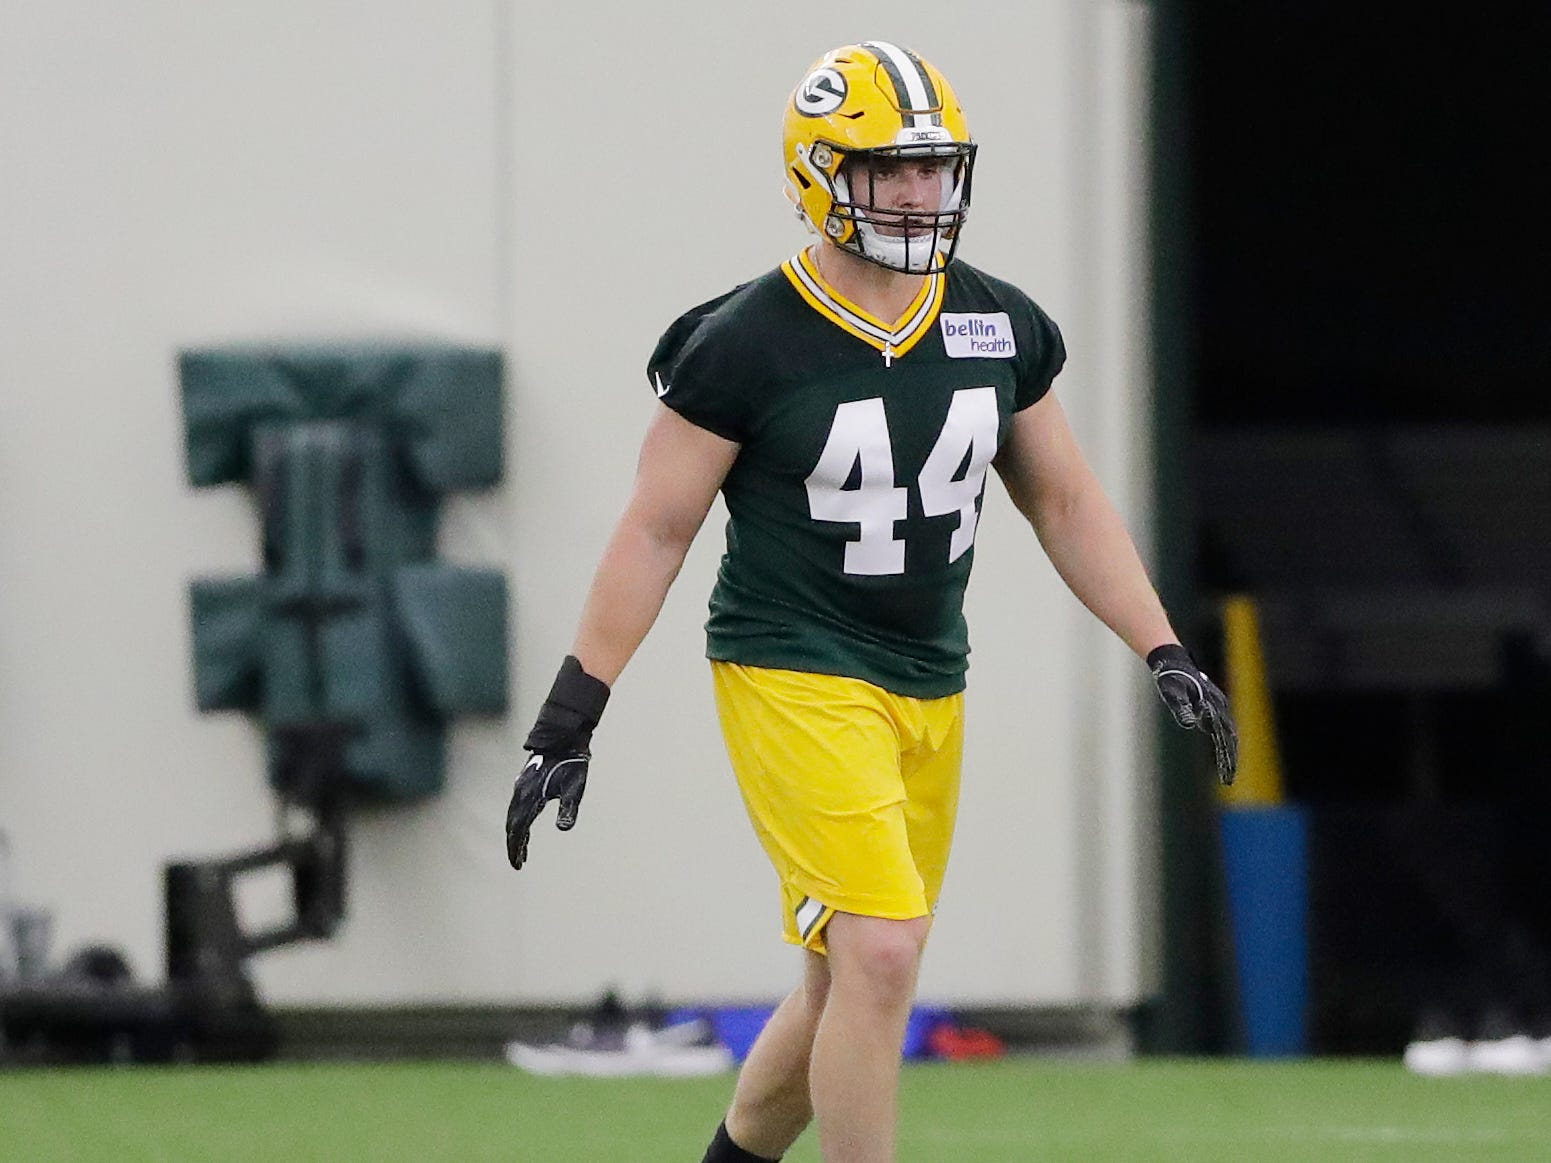 Green Bay Packers linebacker Ty Summers (44) during practice at rookie minicamp at the Don Hutson Center on Friday, May 3, 2019 in Ashwaubenon, Wis.Adam Wesley/USA TODAY NETWORK-Wis